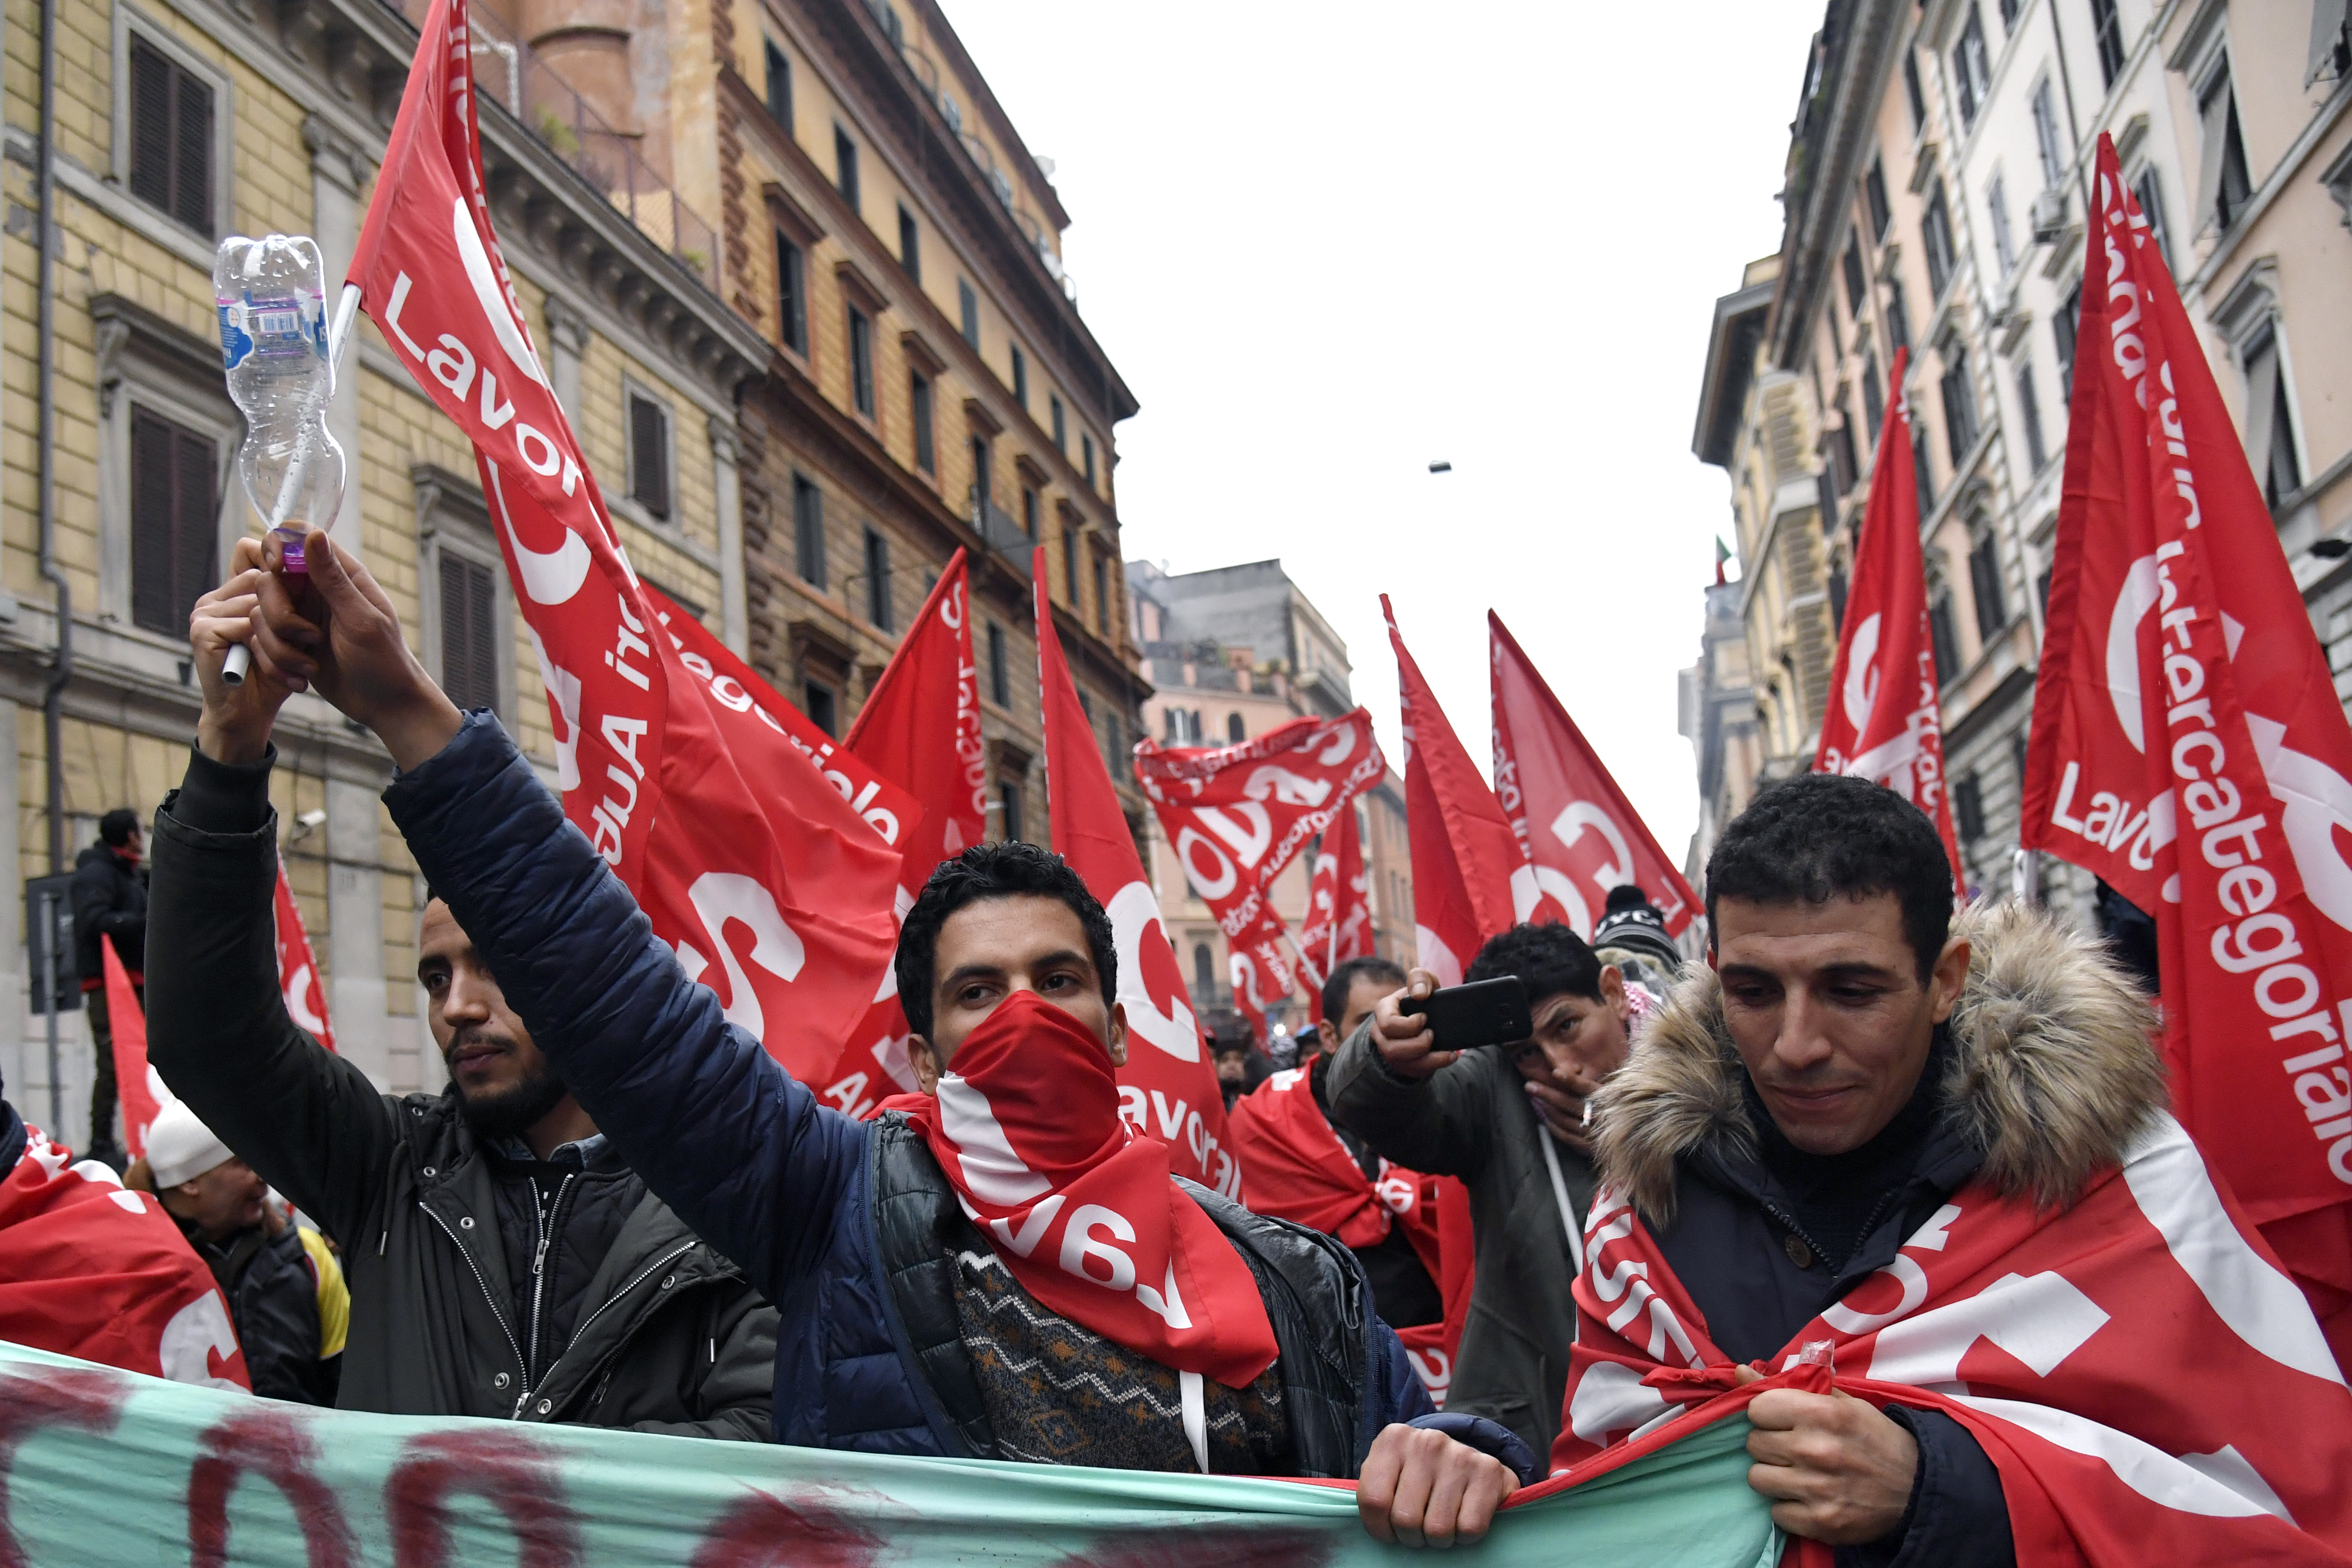 People take part in an anti-fascist march called by Italian left-wing parties and union organizations, in central Rome, Italy, Feb. 24, 2018.